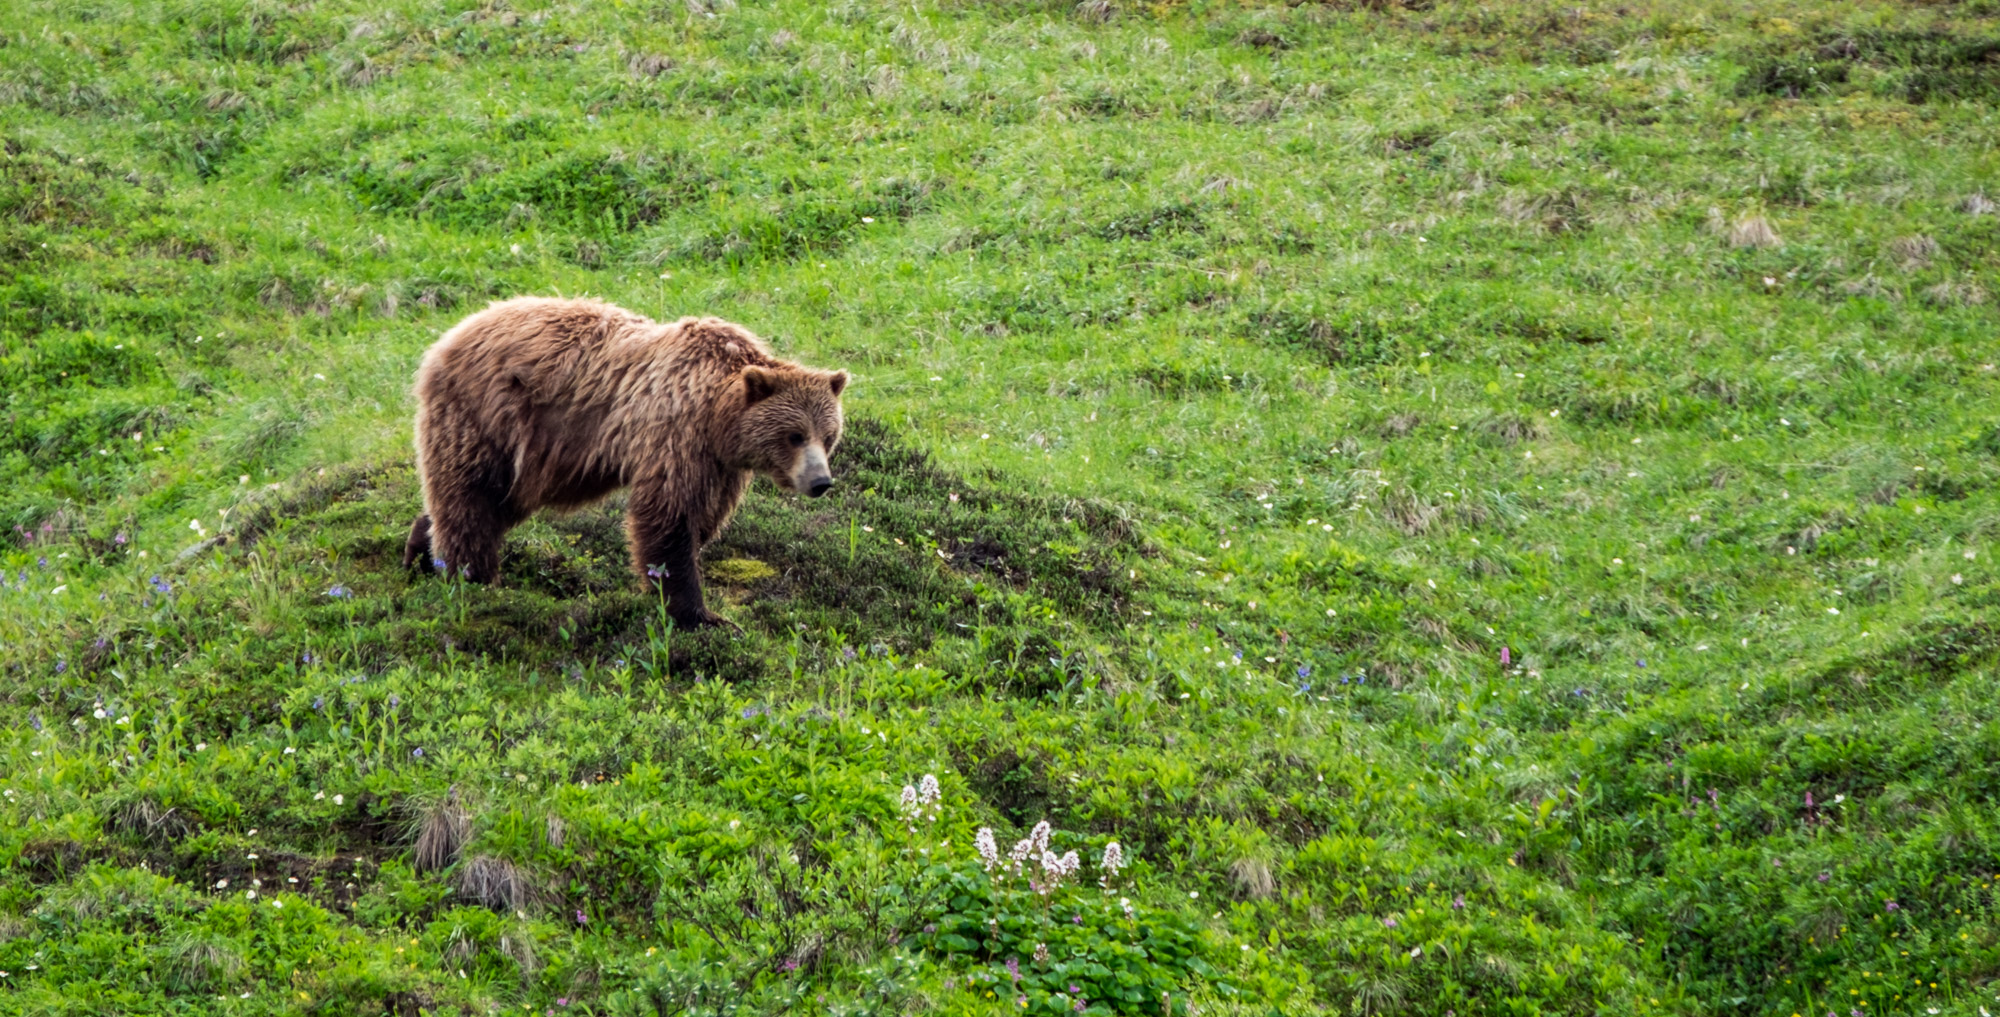 The inland grizzlies are quite different than the coastal grizzlies we'd seen at Katmai.